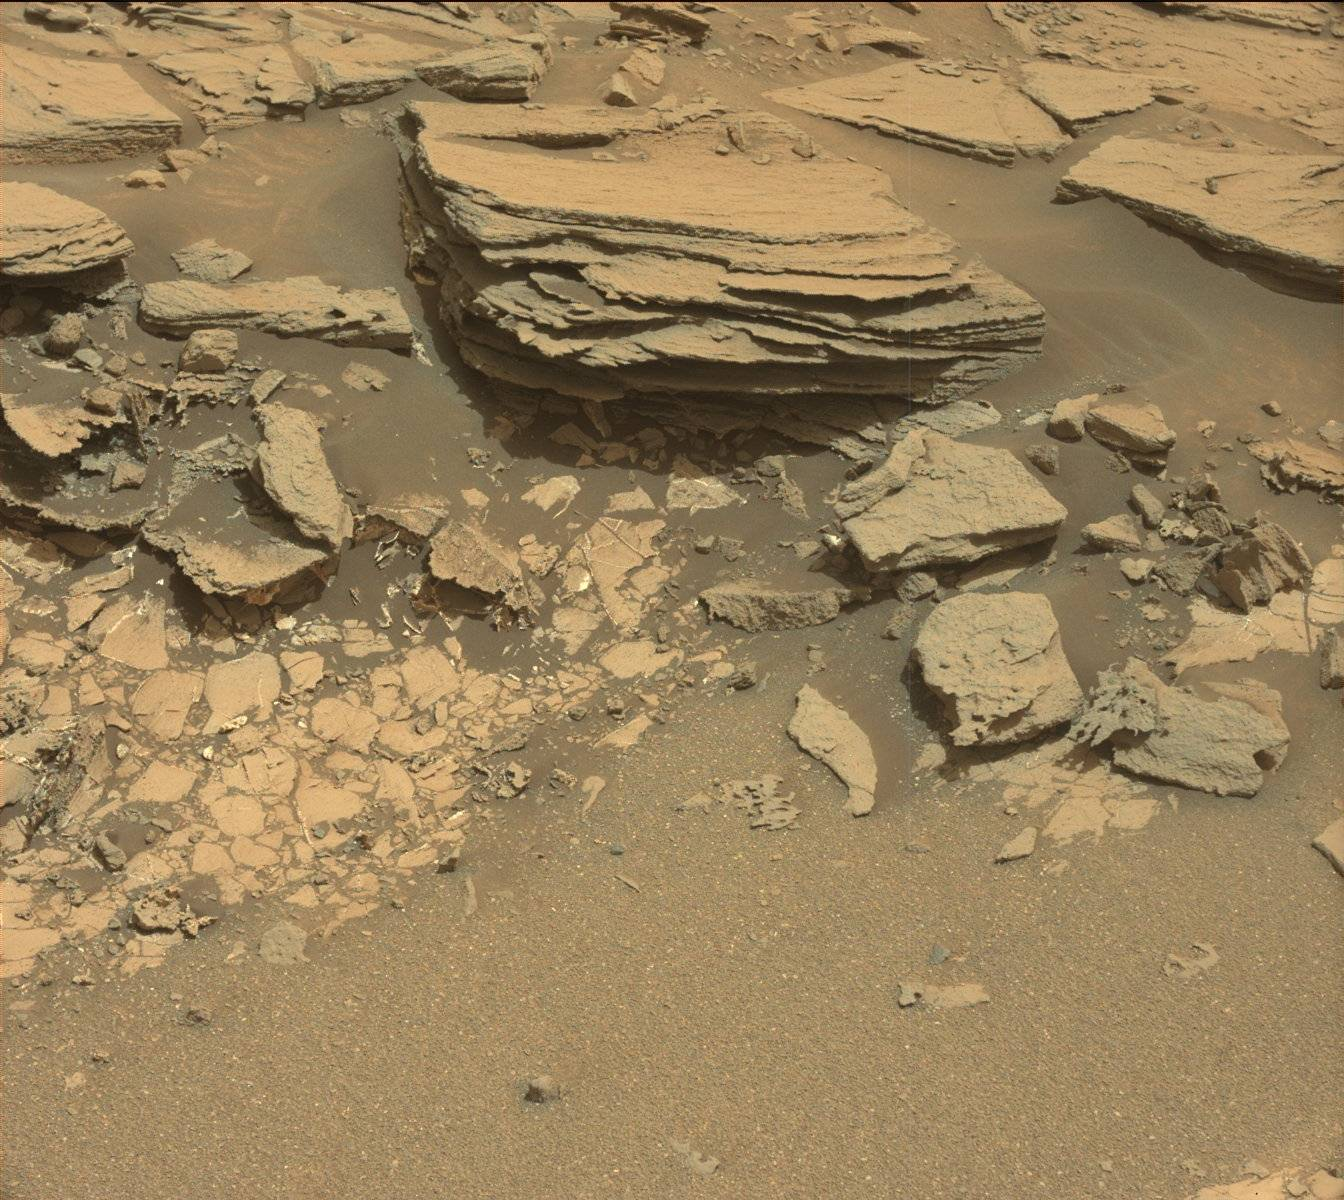 Mastcam image of Ronan Sol 995